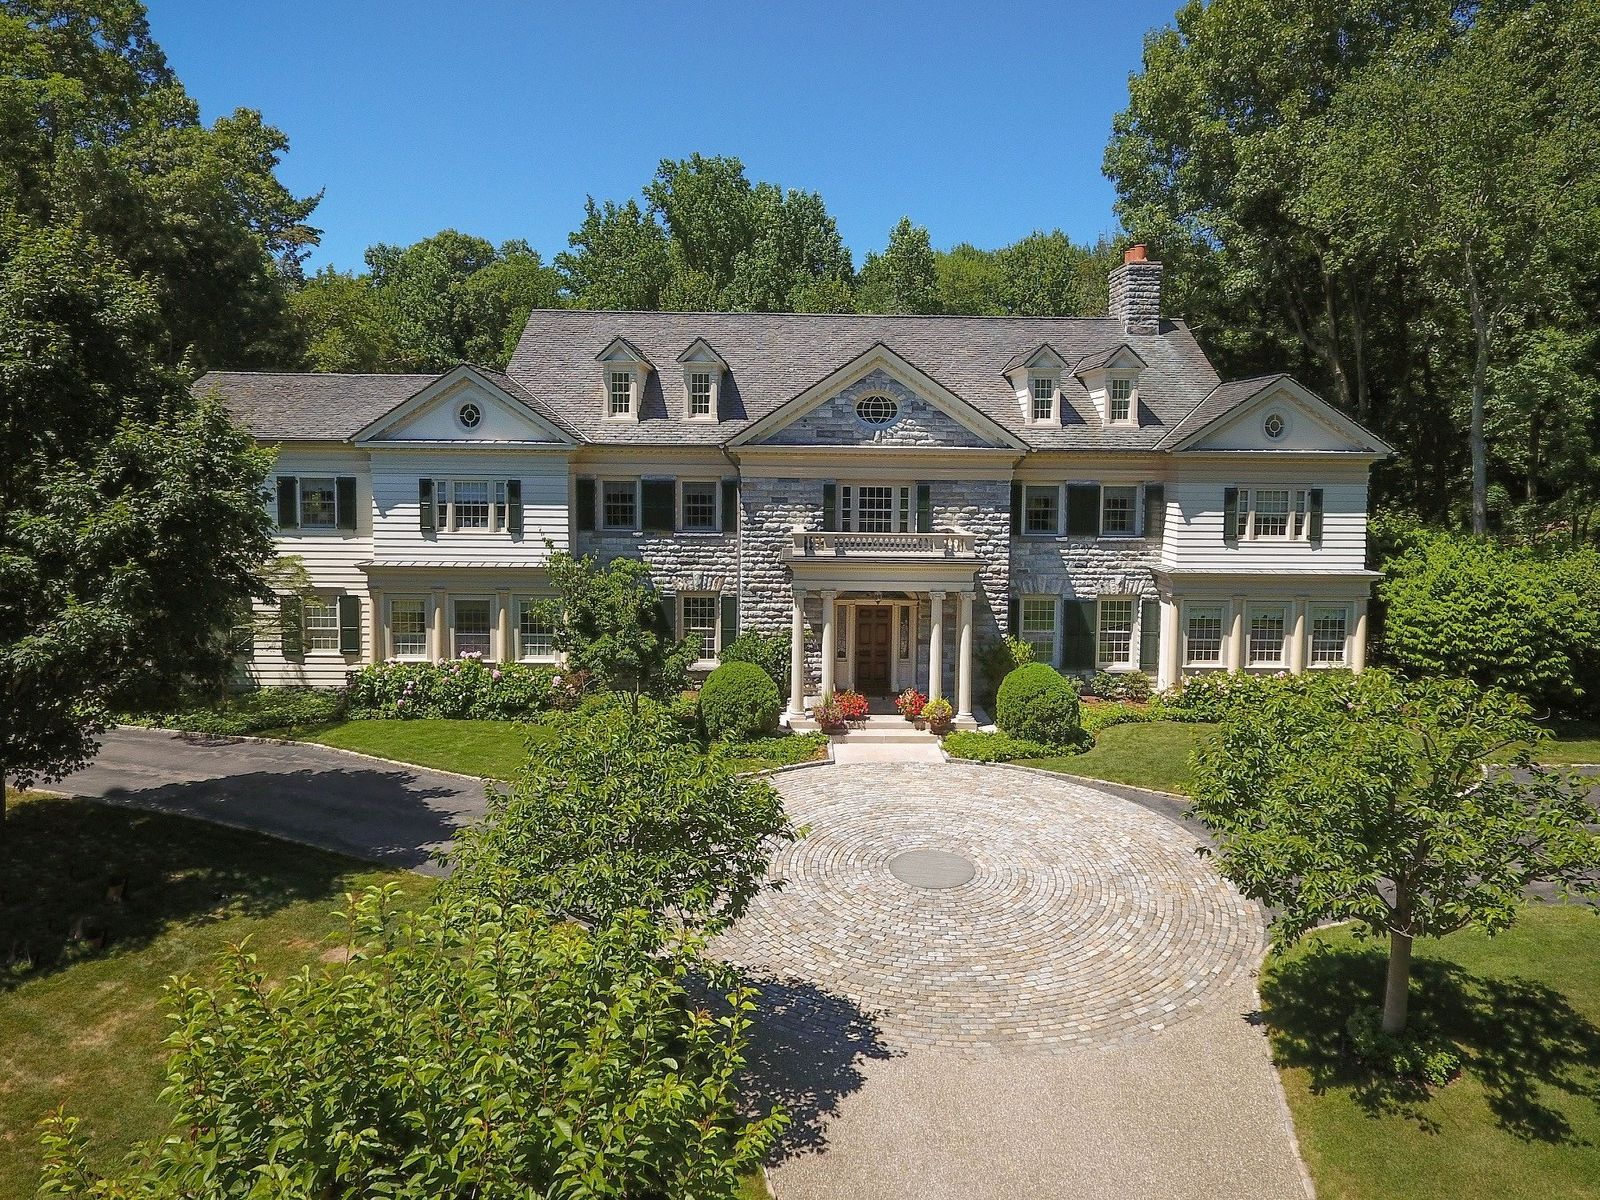 Distinguished Georgian Estate, Greenwich CT Single Family Home - Greenwich Real Estate